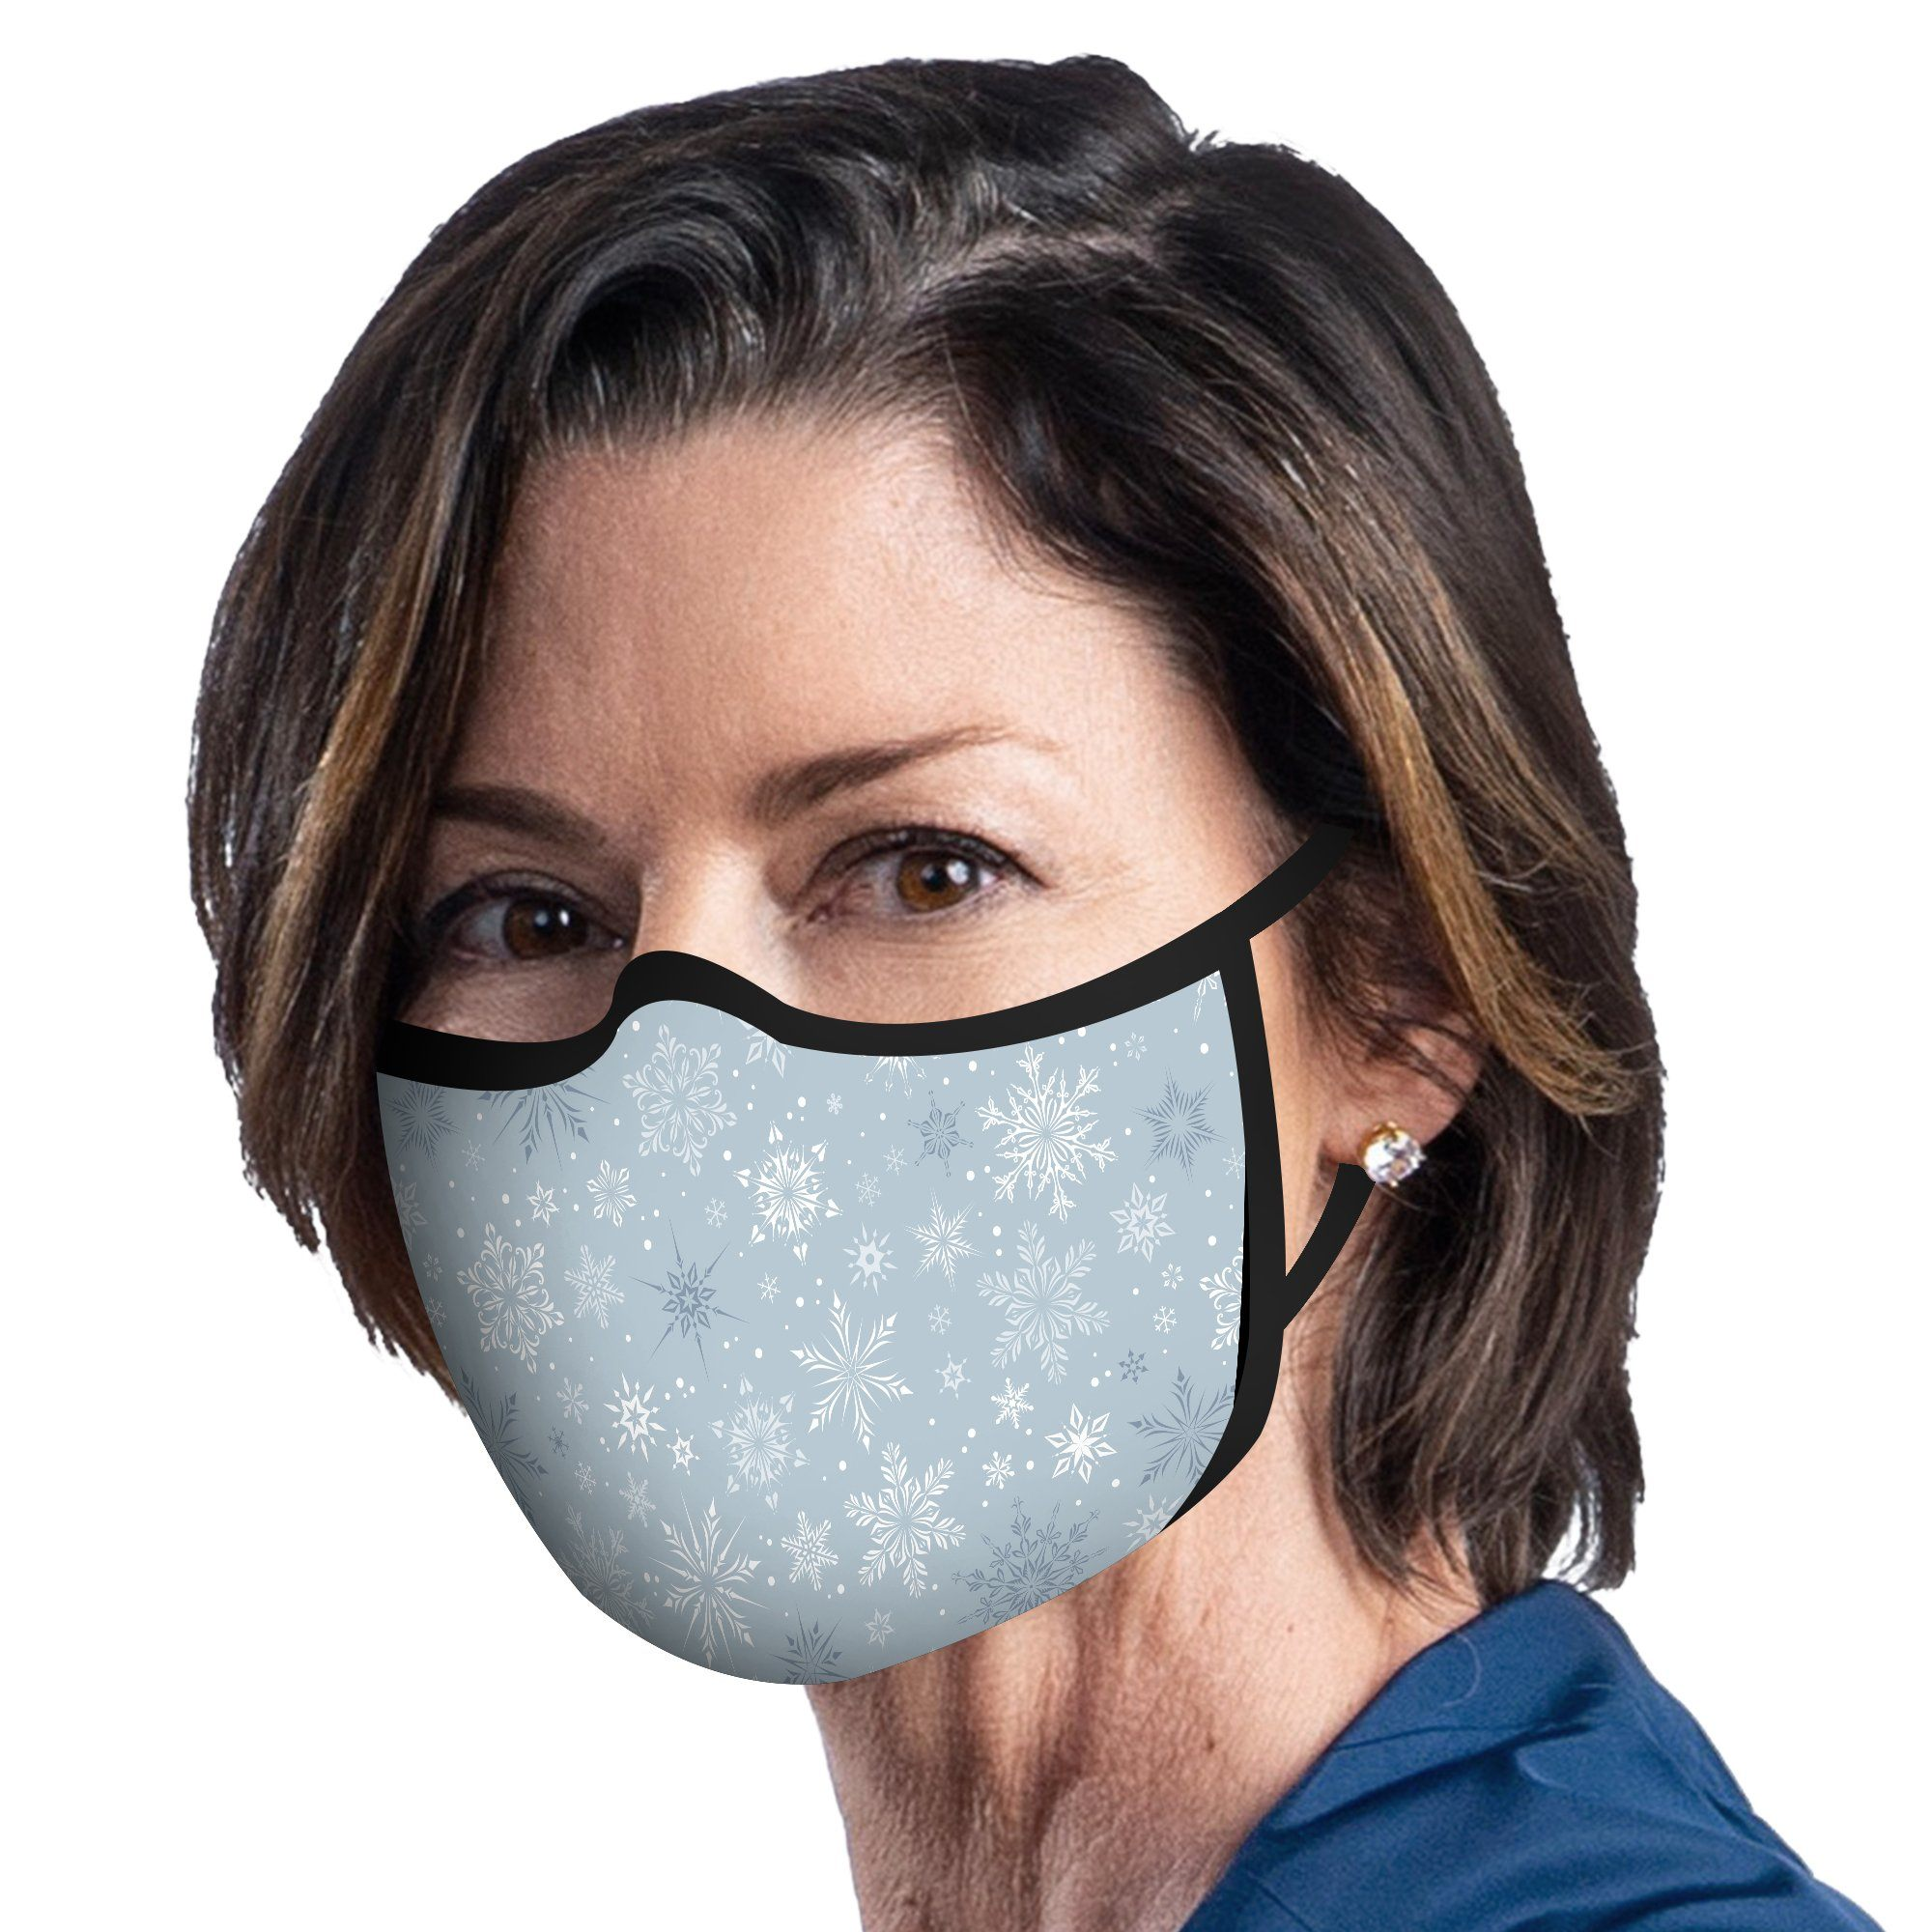 Woman wearing a RainCaper Silver Snowflakes Reusable Fabric Face Mask